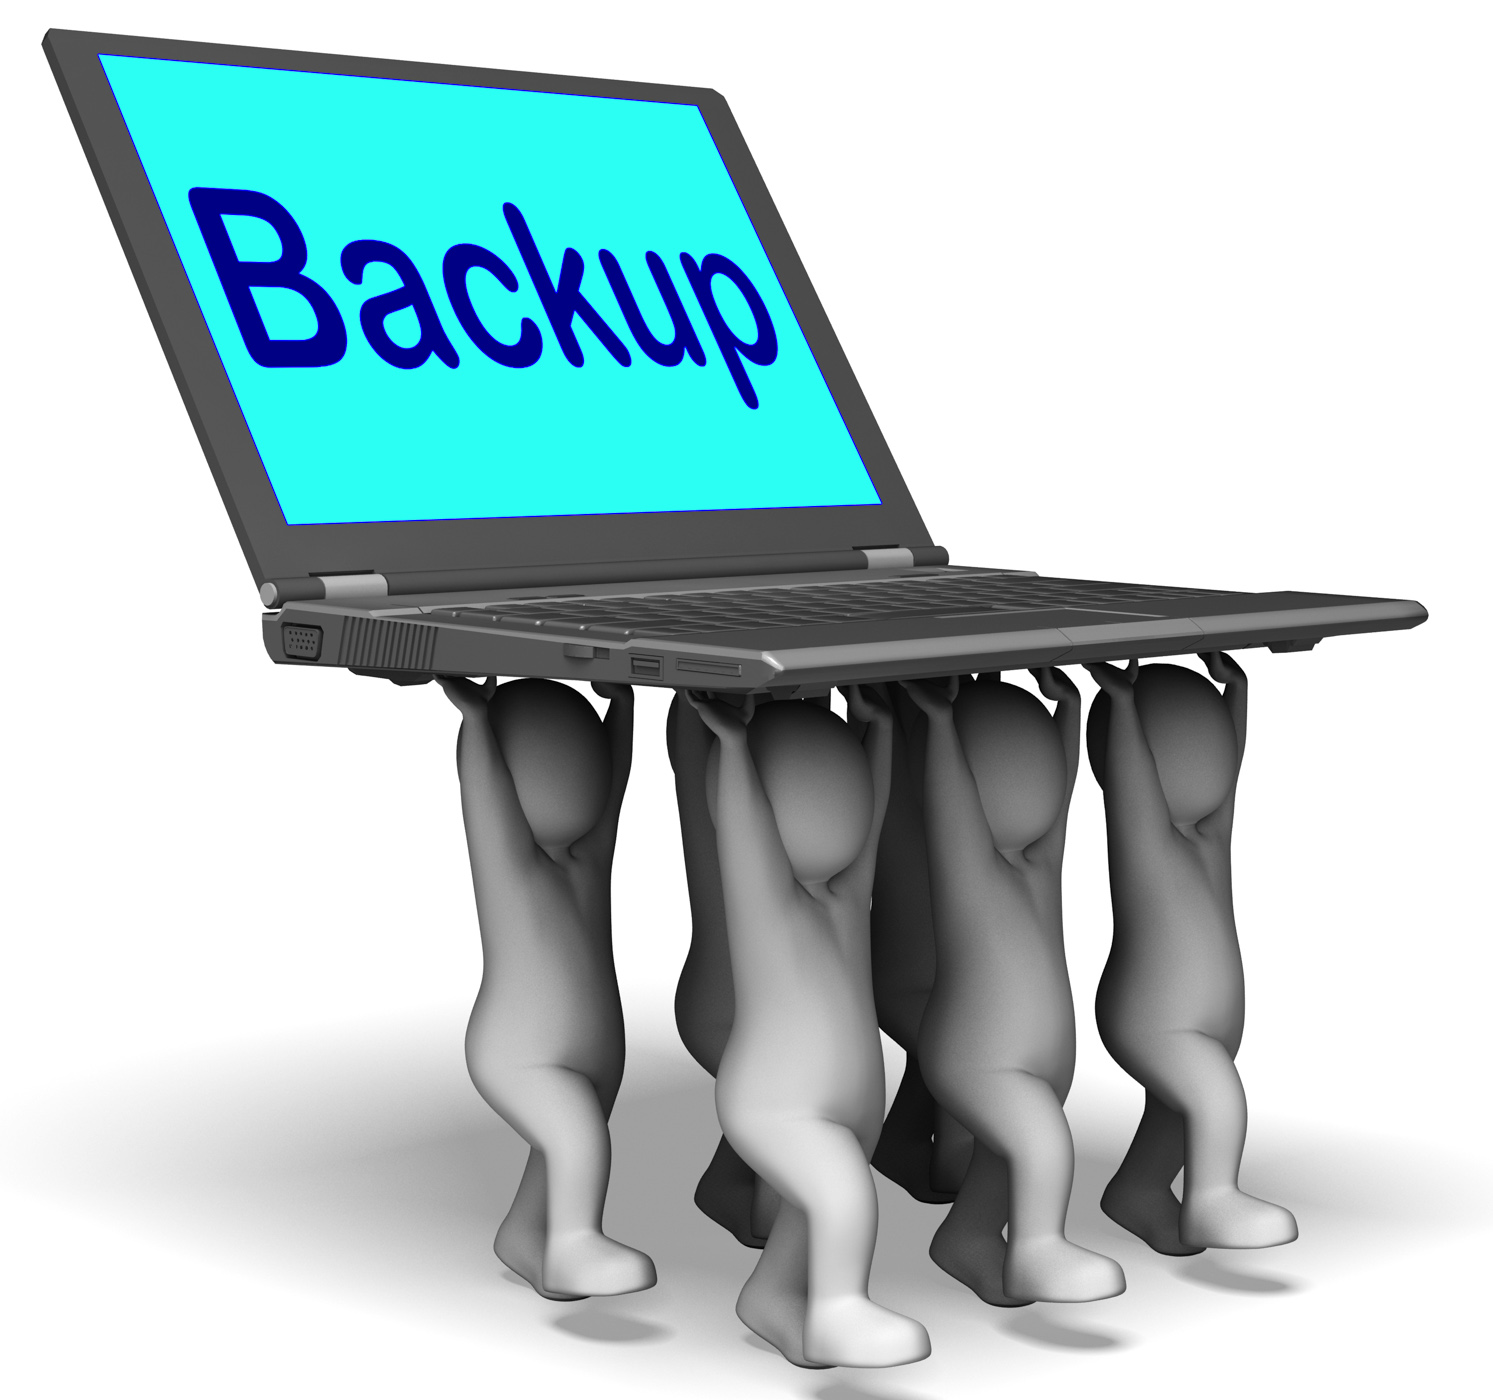 Backup character laptop shows archive back up and storing photo